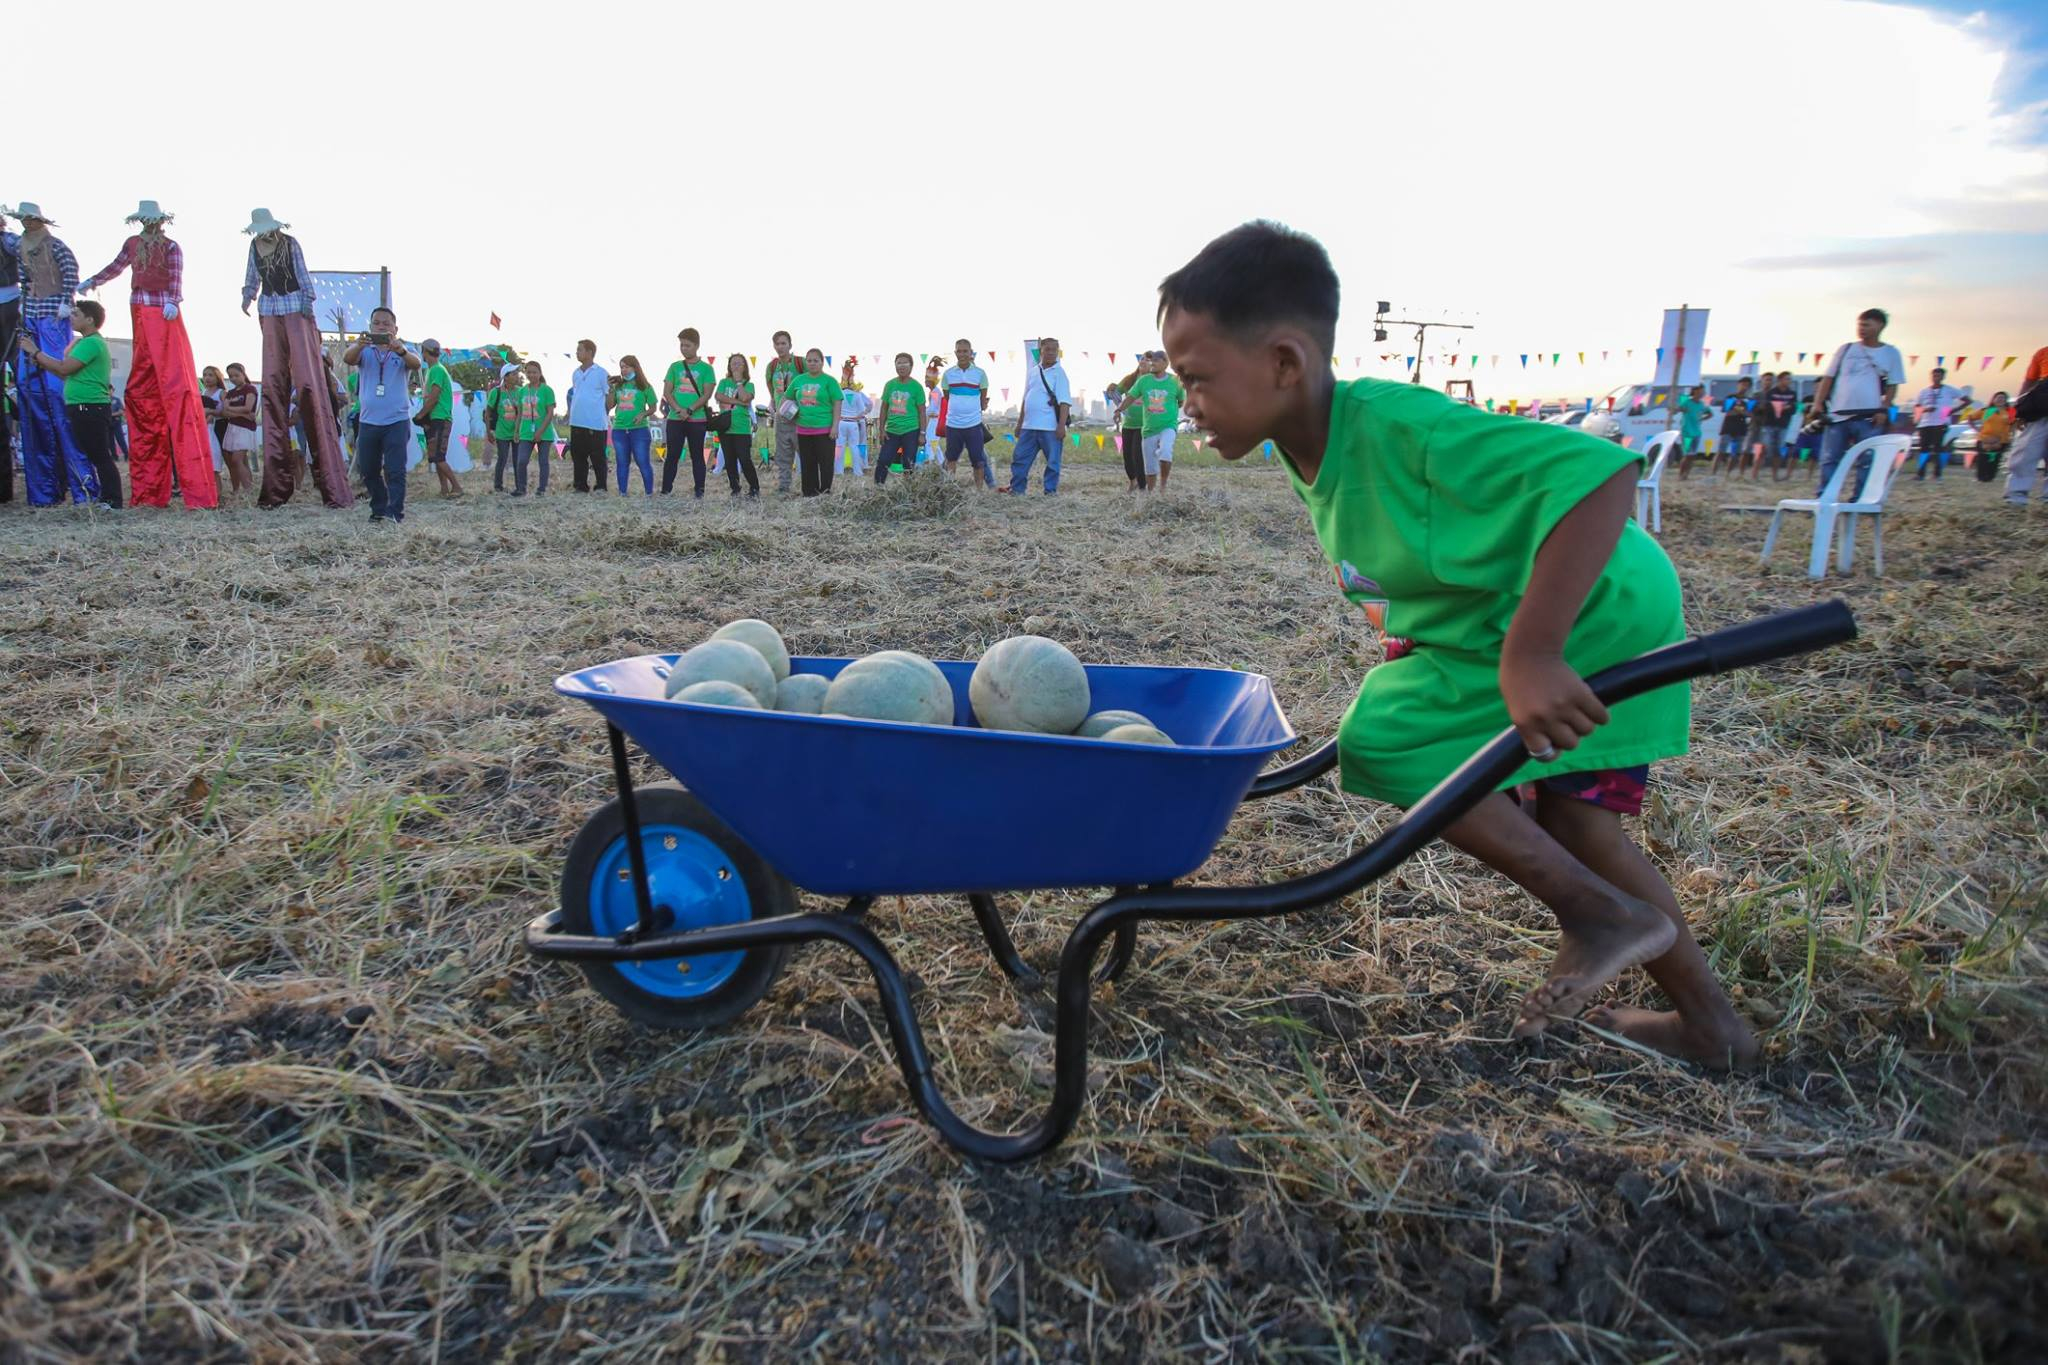 Metro Manila's sole Probinsyudad opens its first Melon Festival